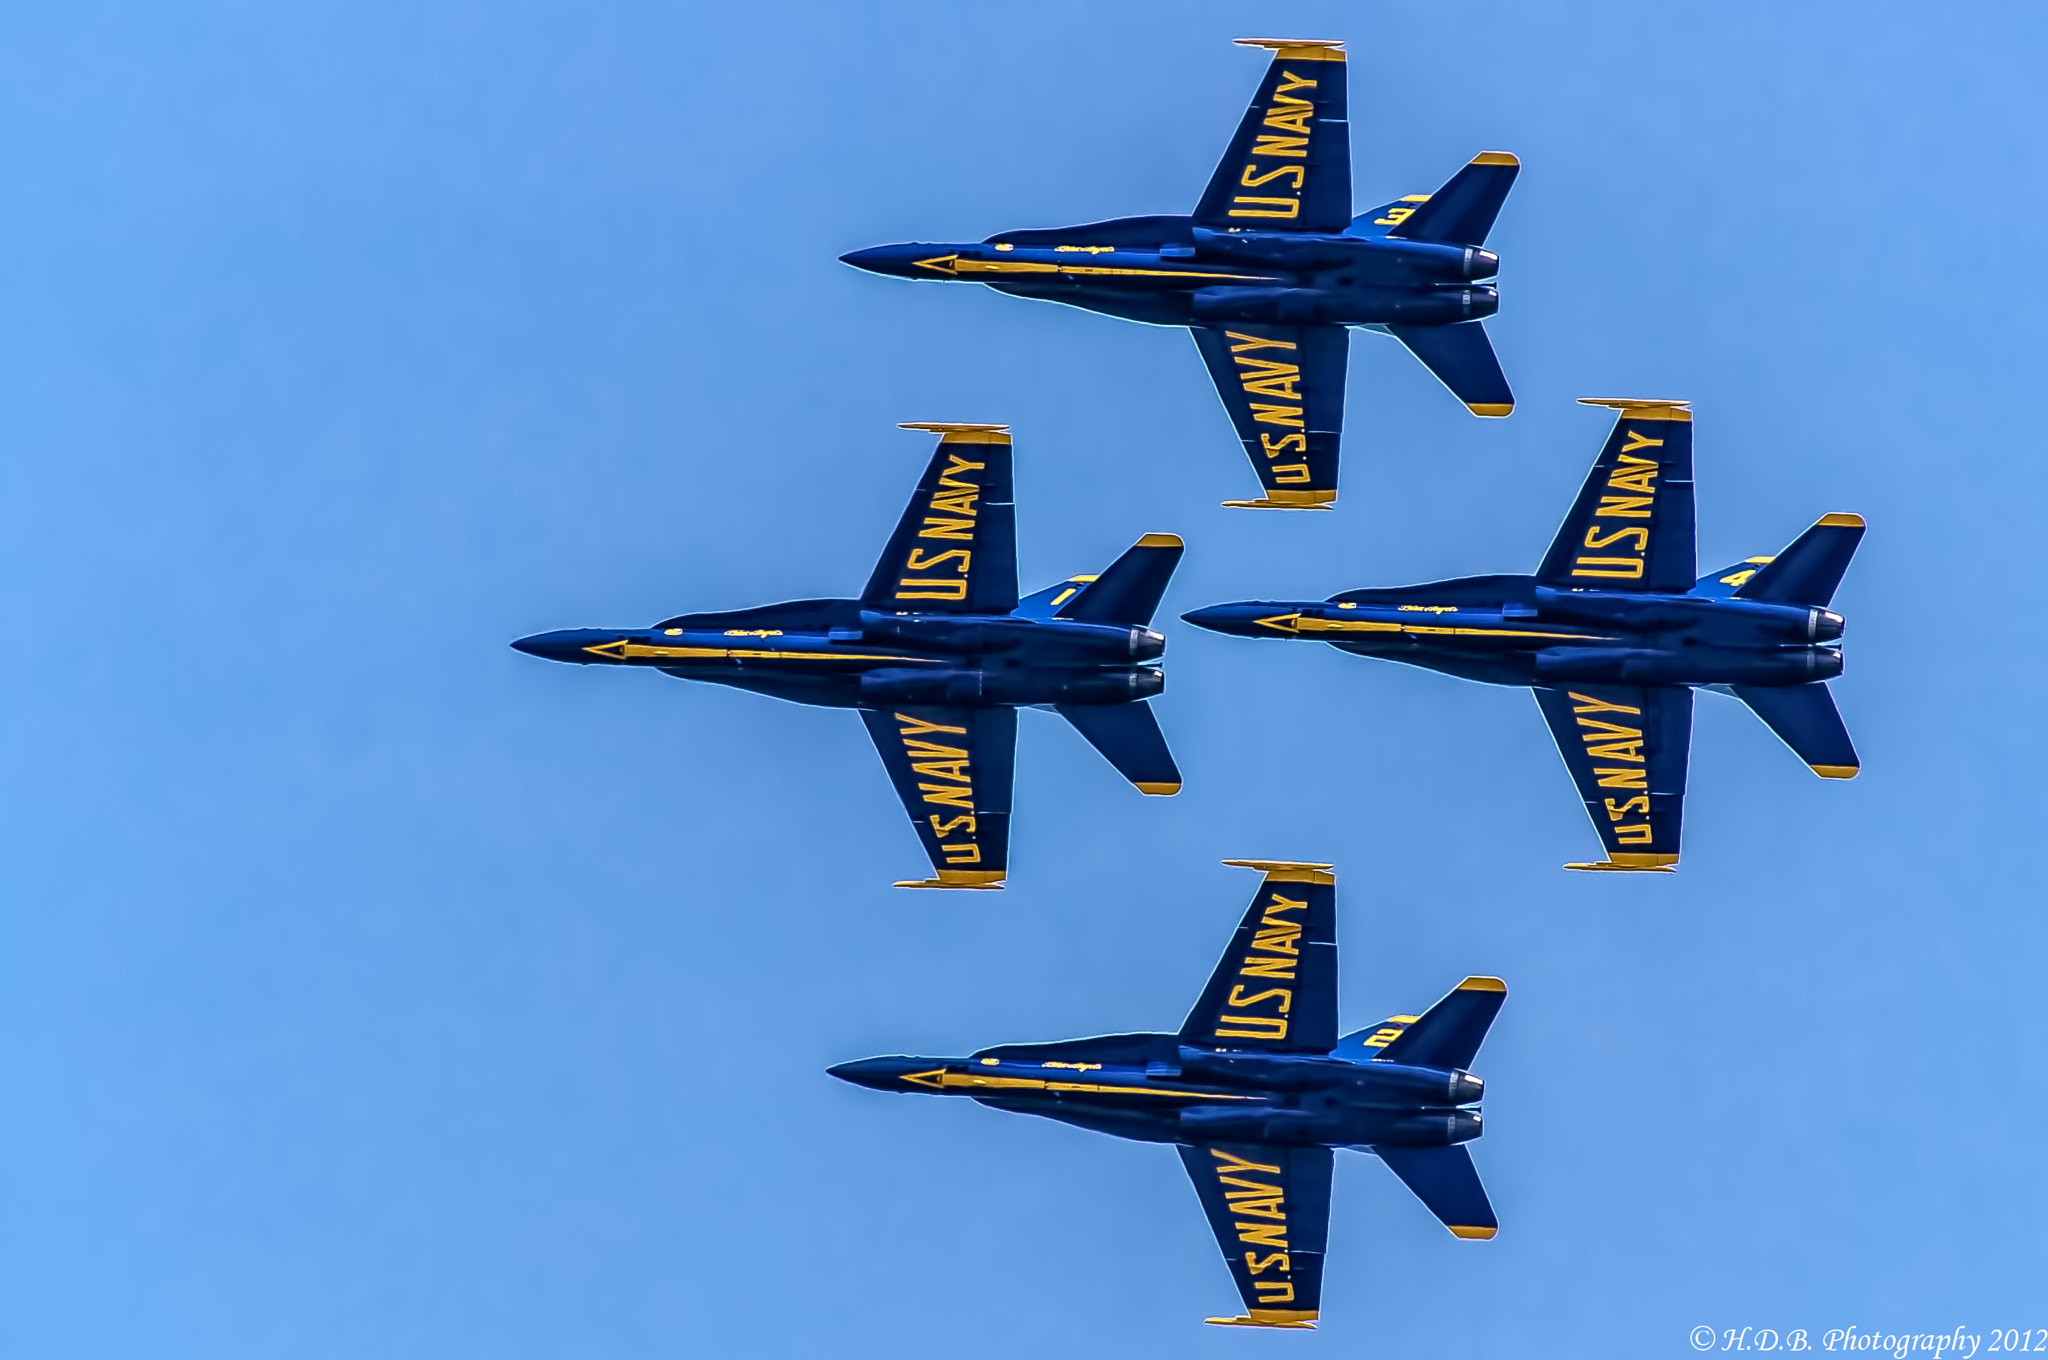 Photograph The Blue Angles by Harold Begun on 500px